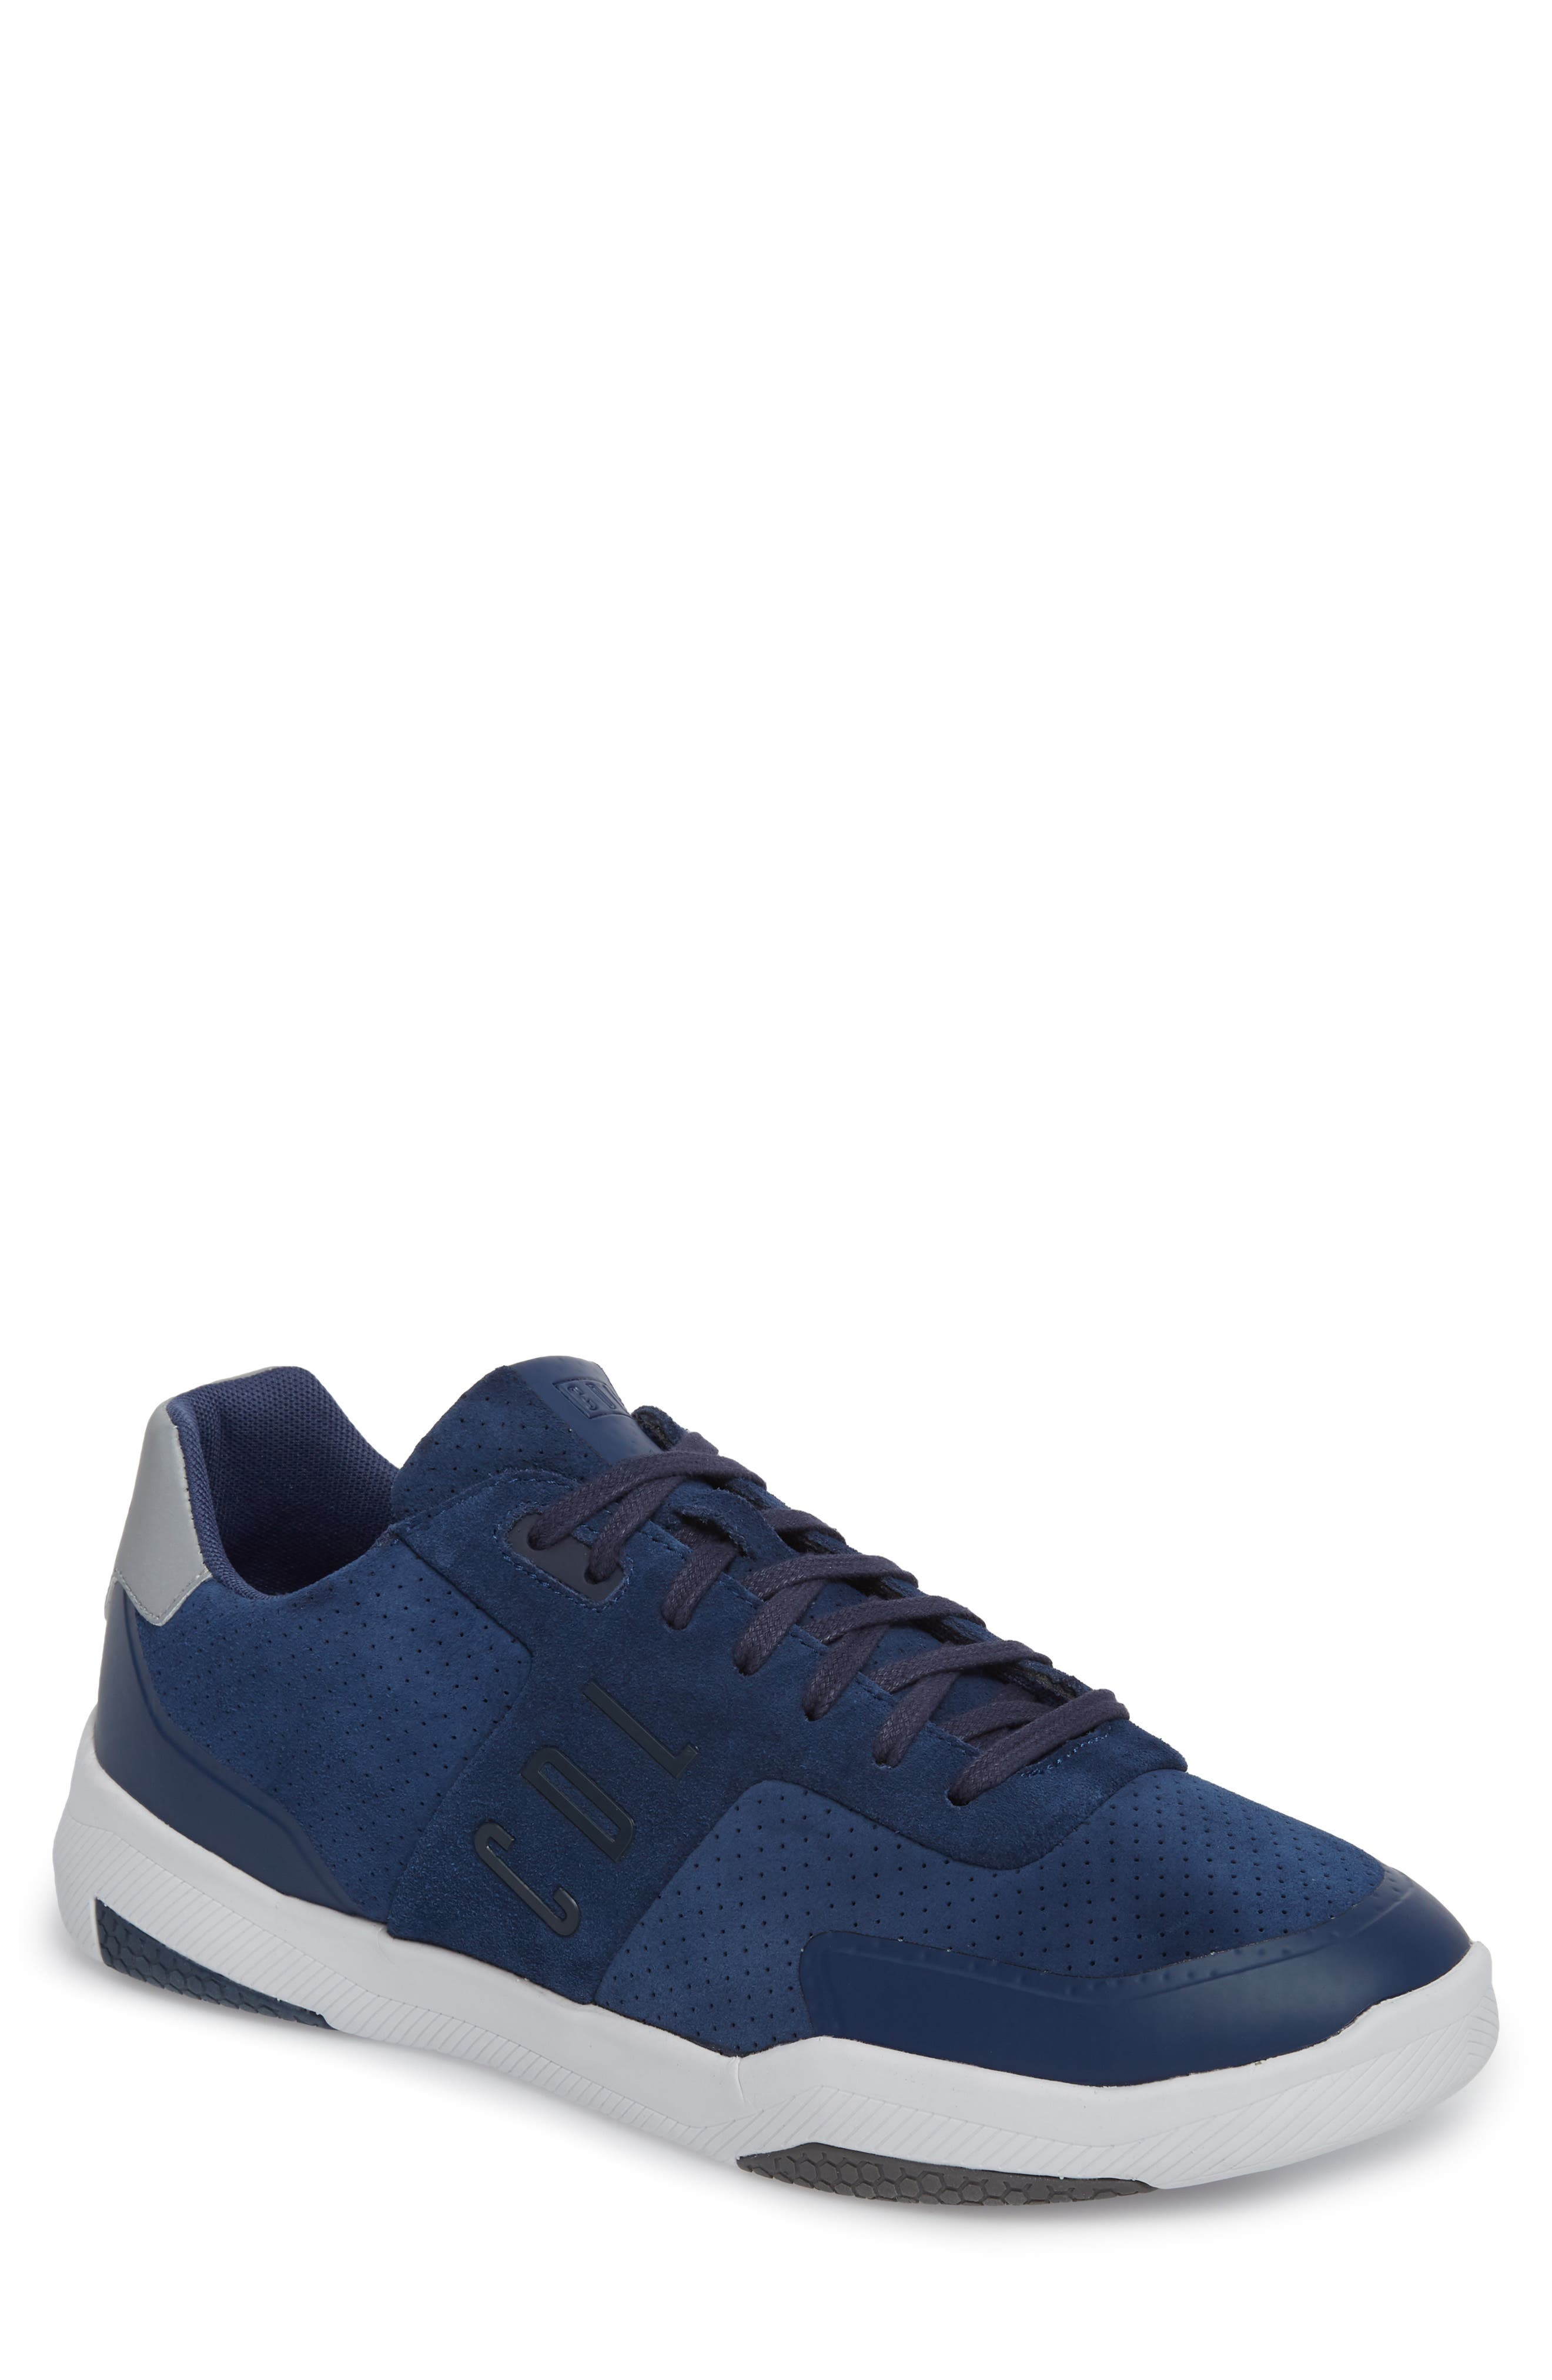 Shima Low Top Sneaker,                             Main thumbnail 1, color,                             NAVY SUEDE